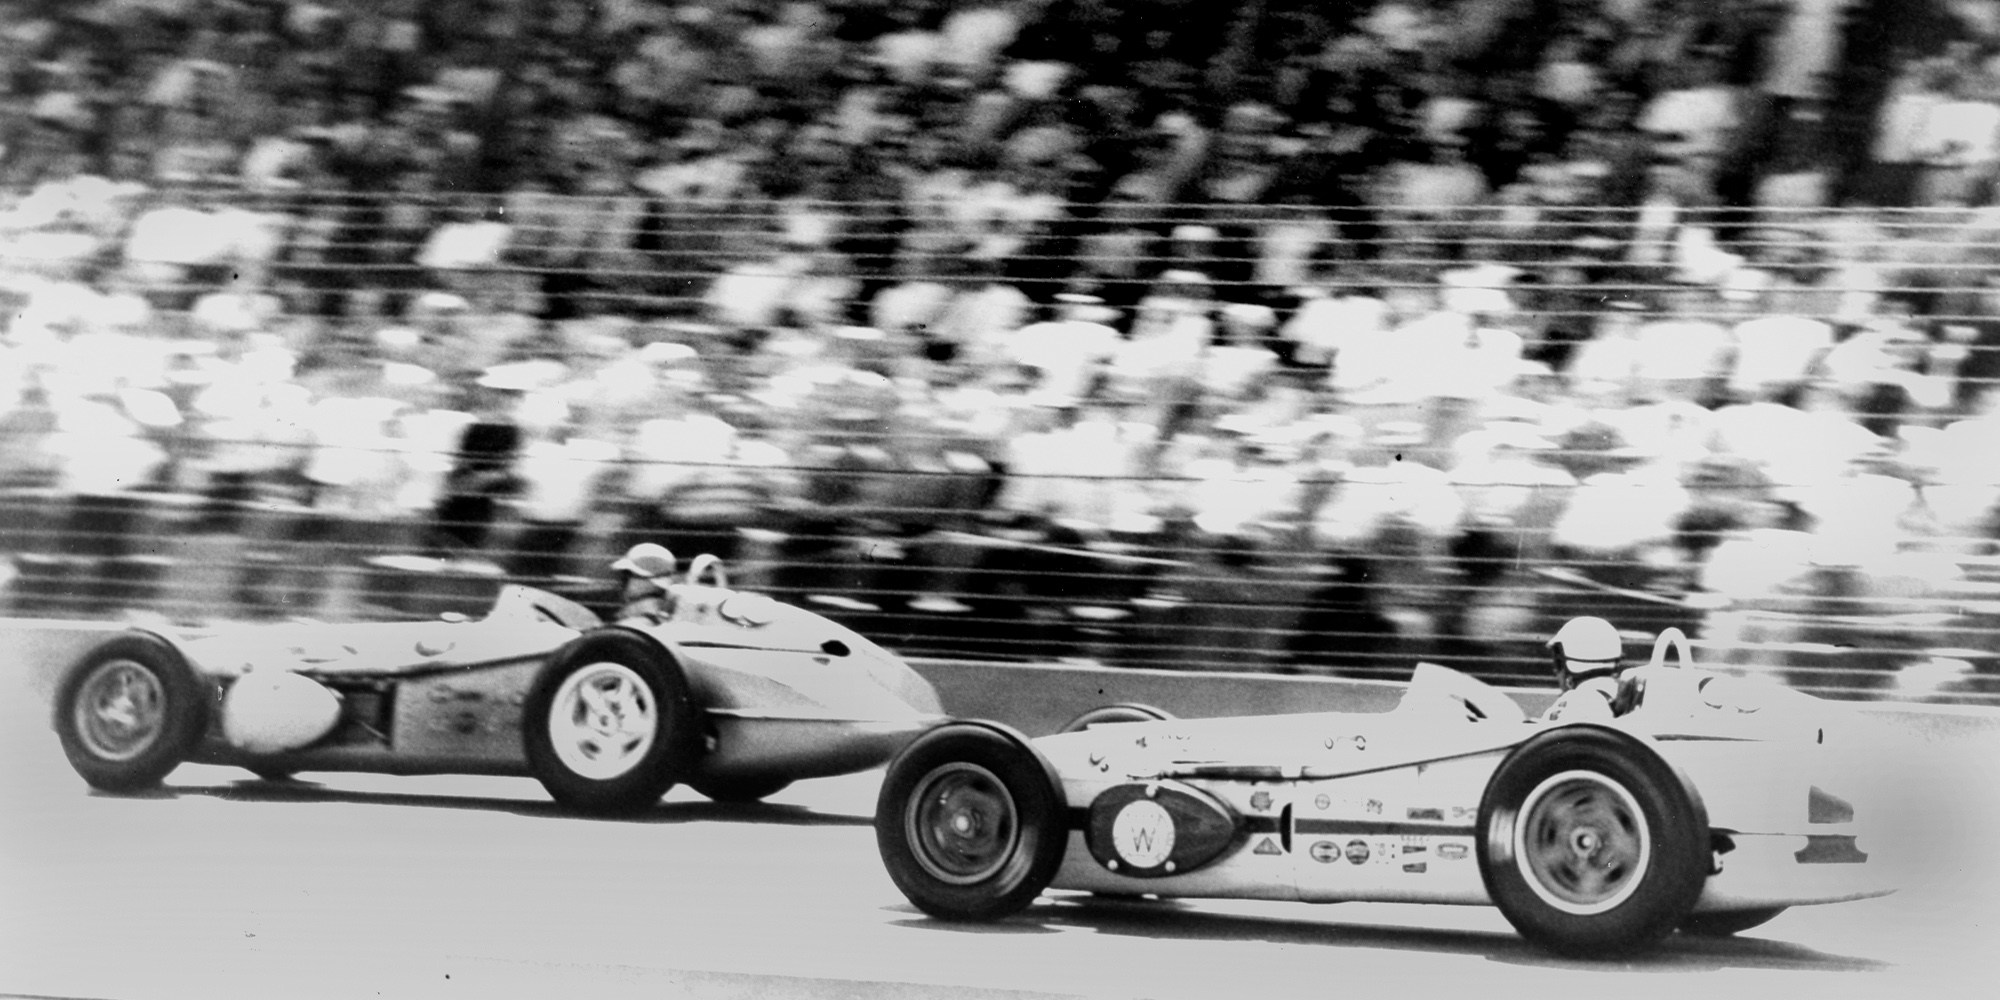 Rathmann vs Ward: battle for the 1960 Indy 500 win